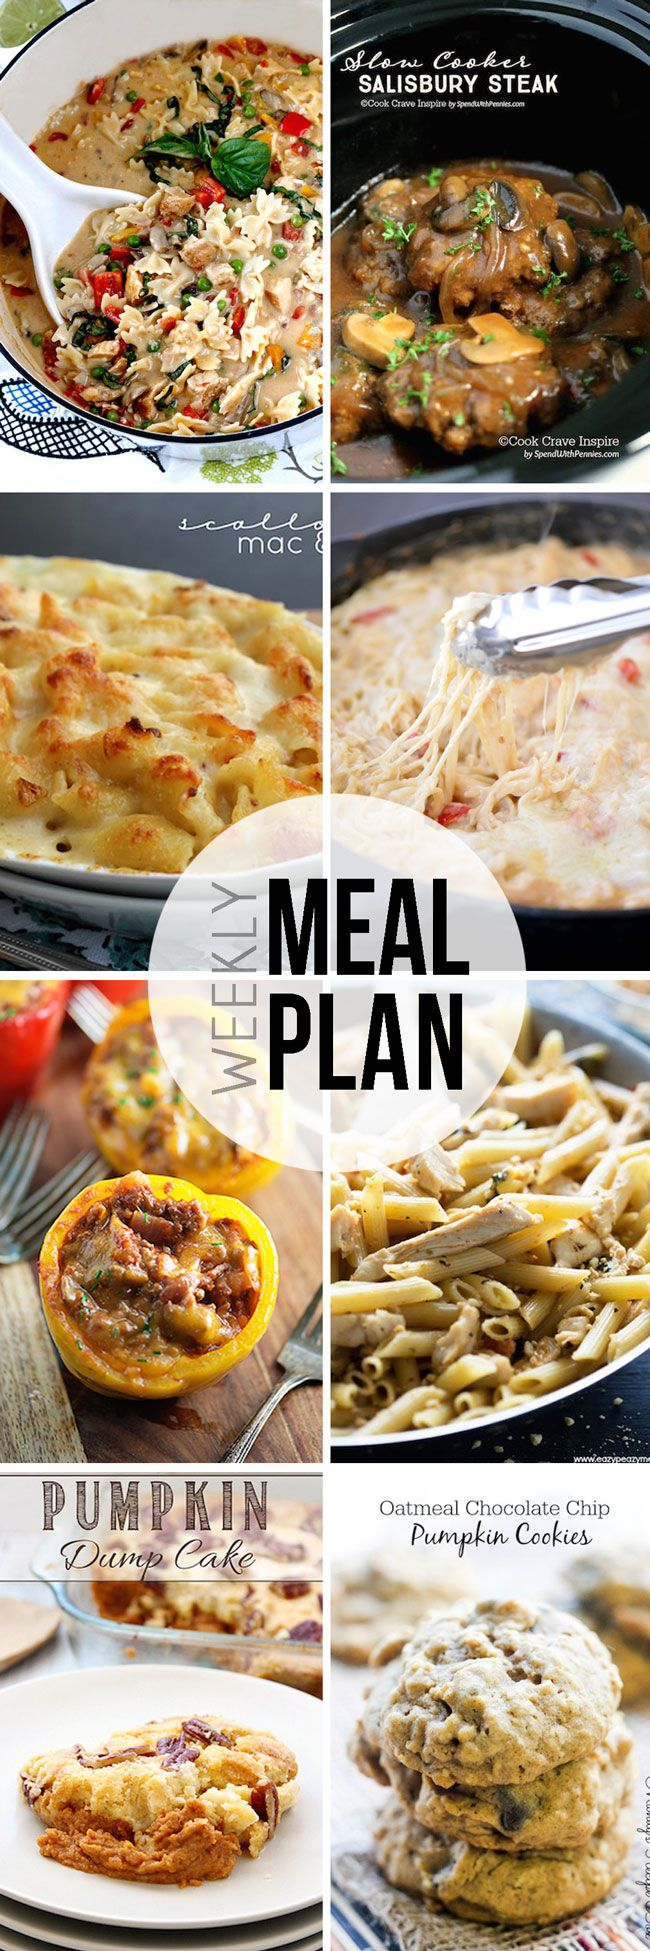 Easy Meal Plan Sunday #15 - Here are six fantastic main dishes and two delicious dessert recipes that your family will love!